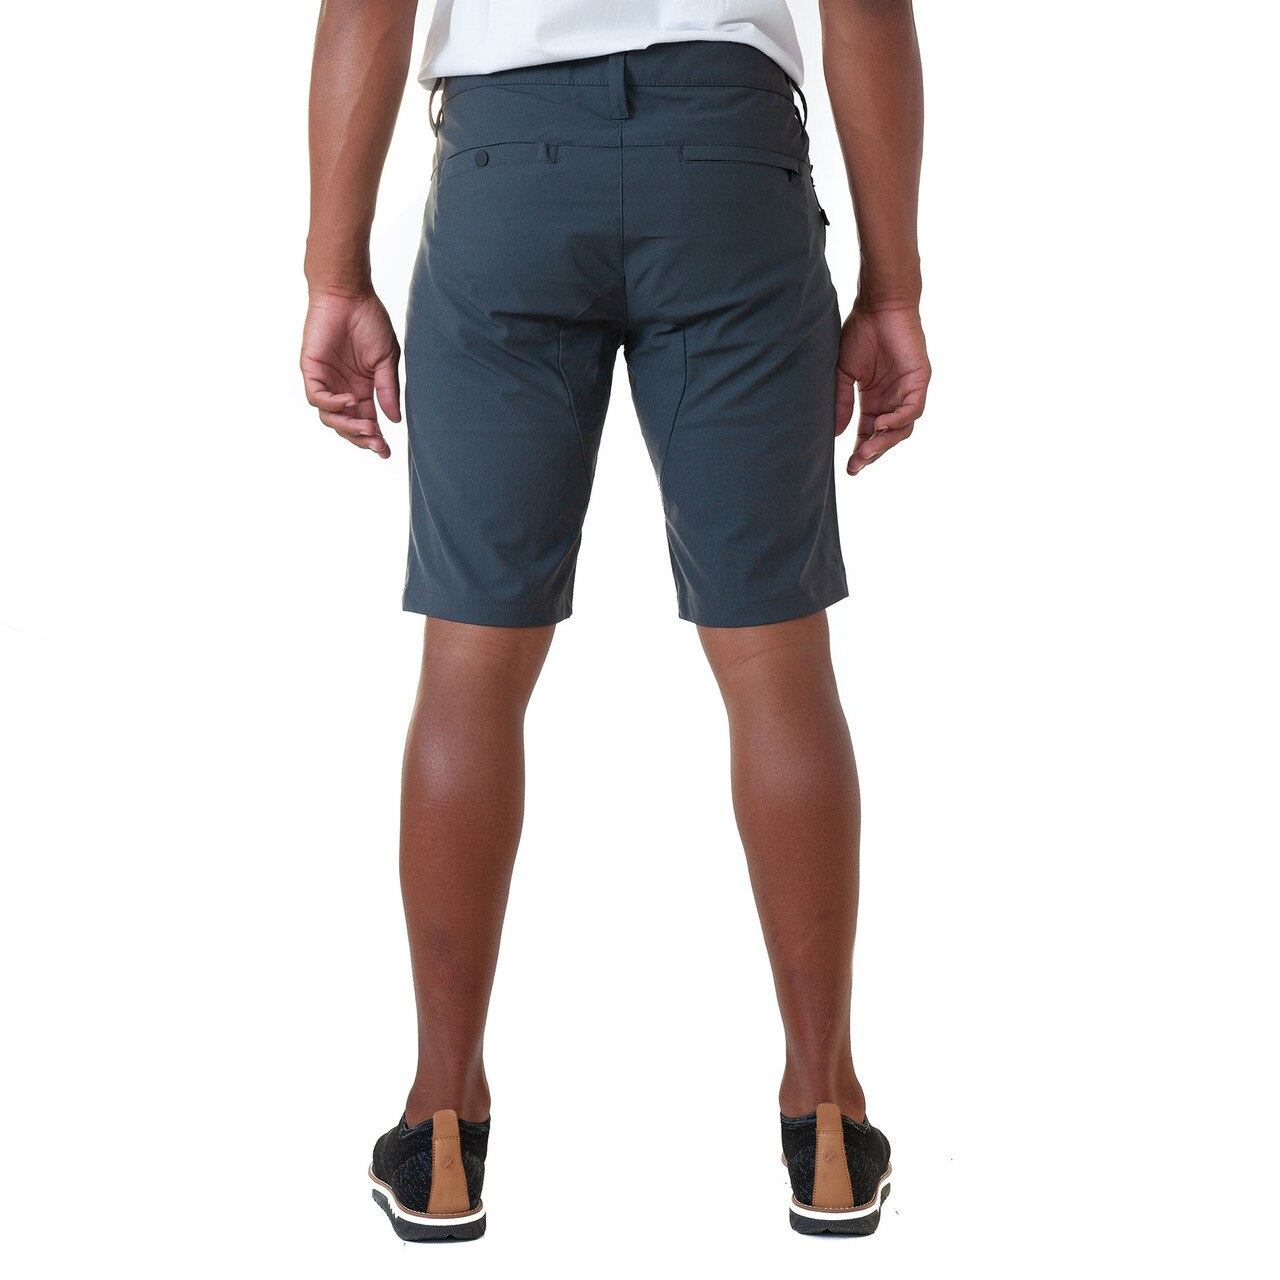 Flux Shorts - Grey